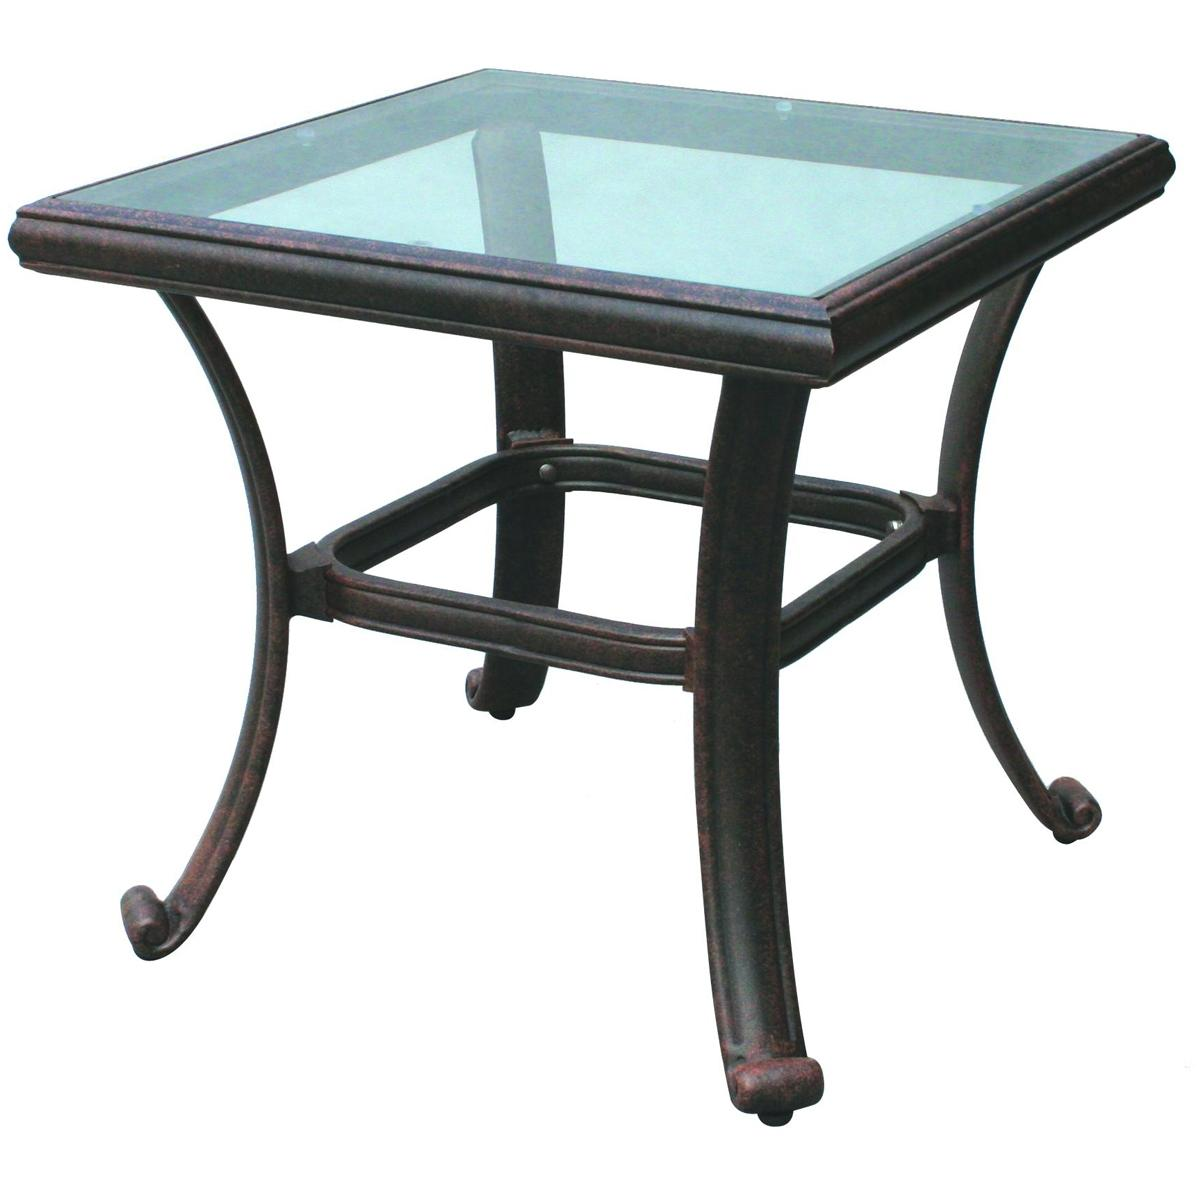 Darlee Series 50 Glass Top Square Aluminum Outdoor Patio End Table - 24 Inch Square - Antique Bronze